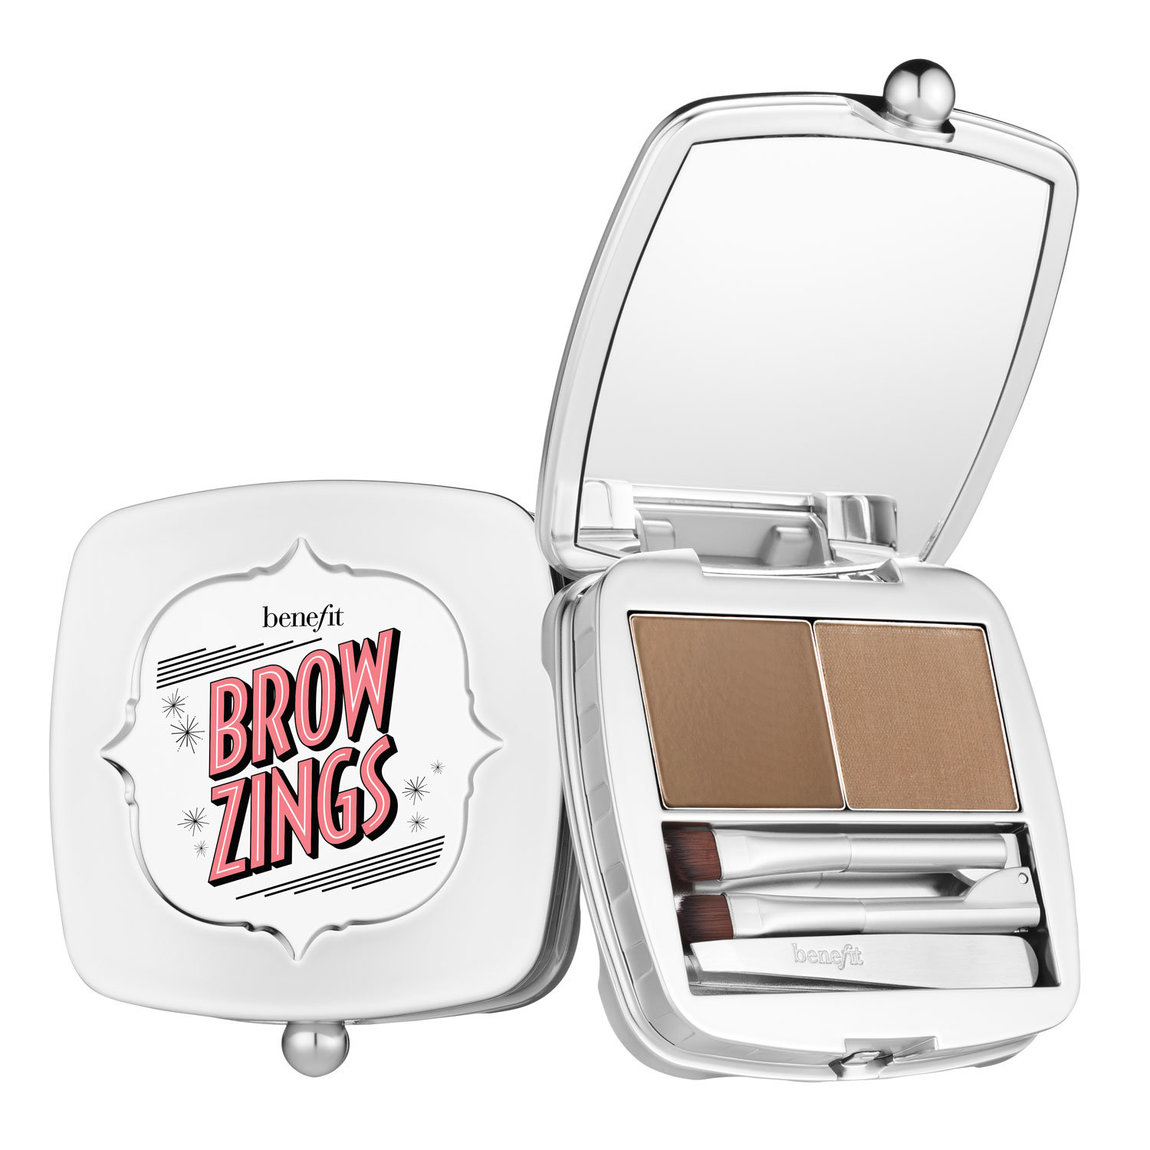 Benefit Cosmetics Brow Zings Eyebrow Shaping Kit 01 Light